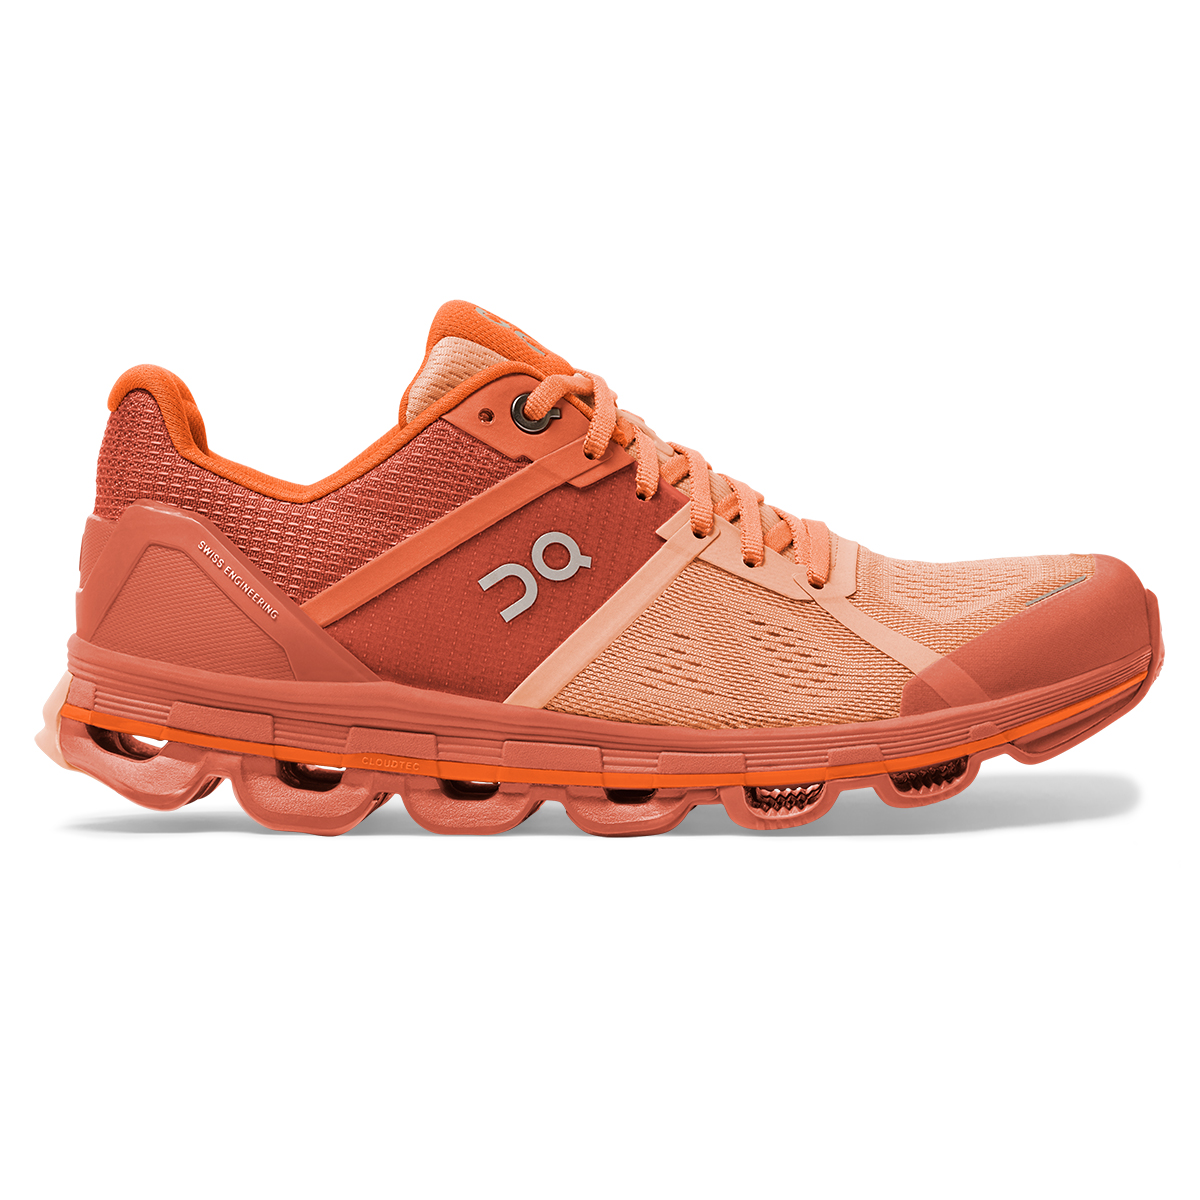 Women's On Cloudace Running Shoe - Color: Blush/Orange - Size: 5 - Width: Regular, Blush/Orange, large, image 1